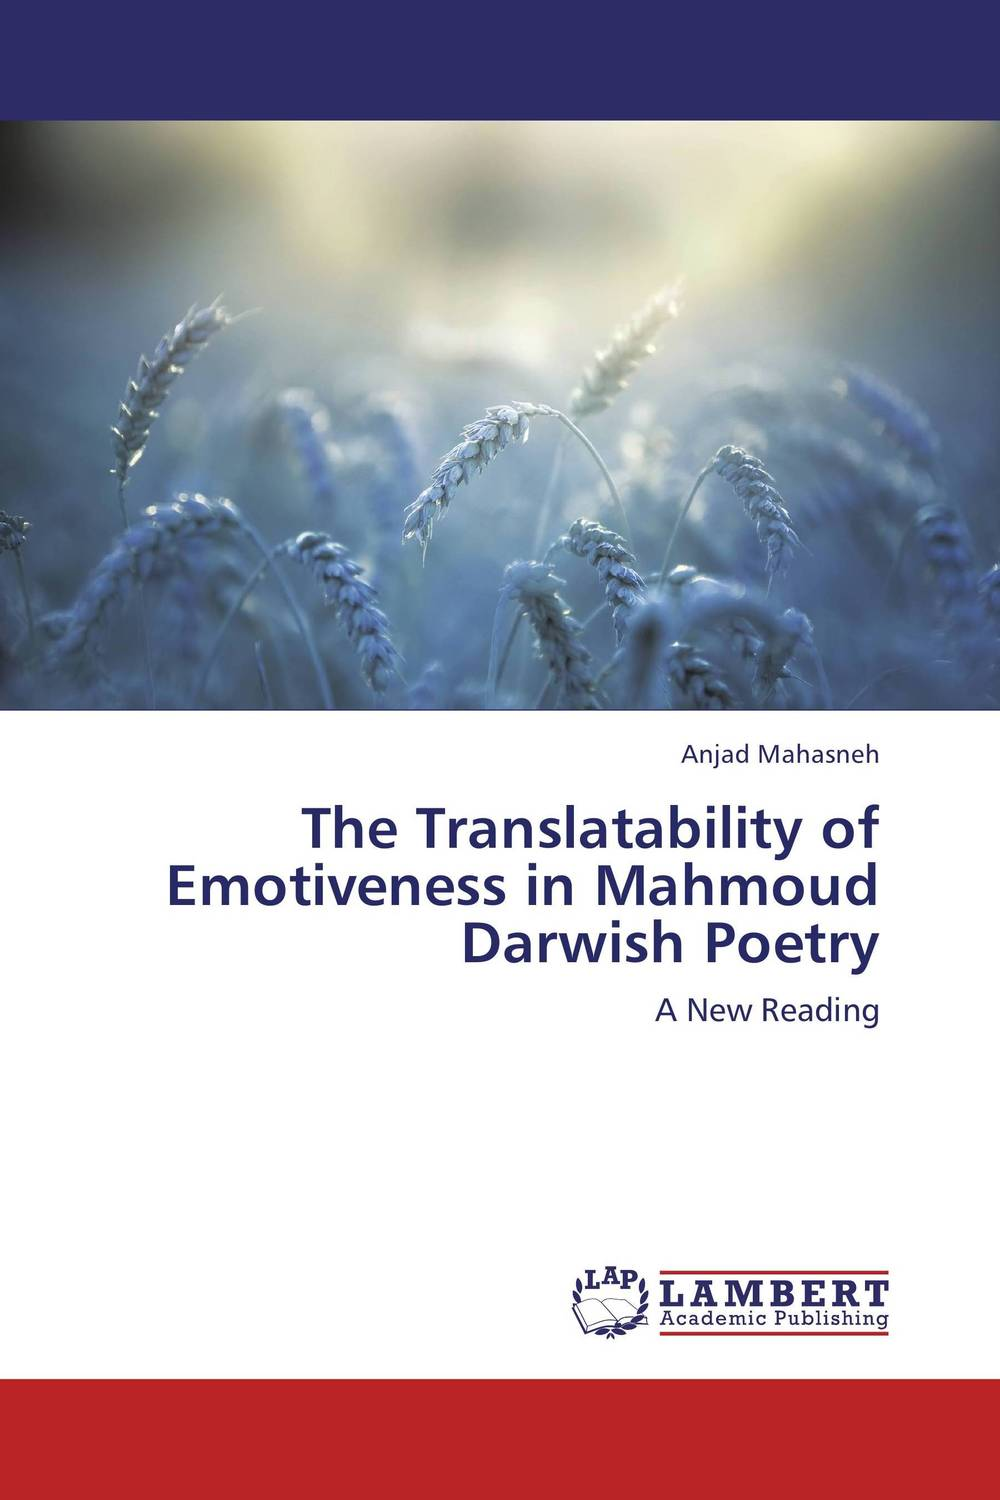 The Translatability of Emotiveness in Mahmoud Darwish Poetry cultural and linguistic hybridity in postcolonial text